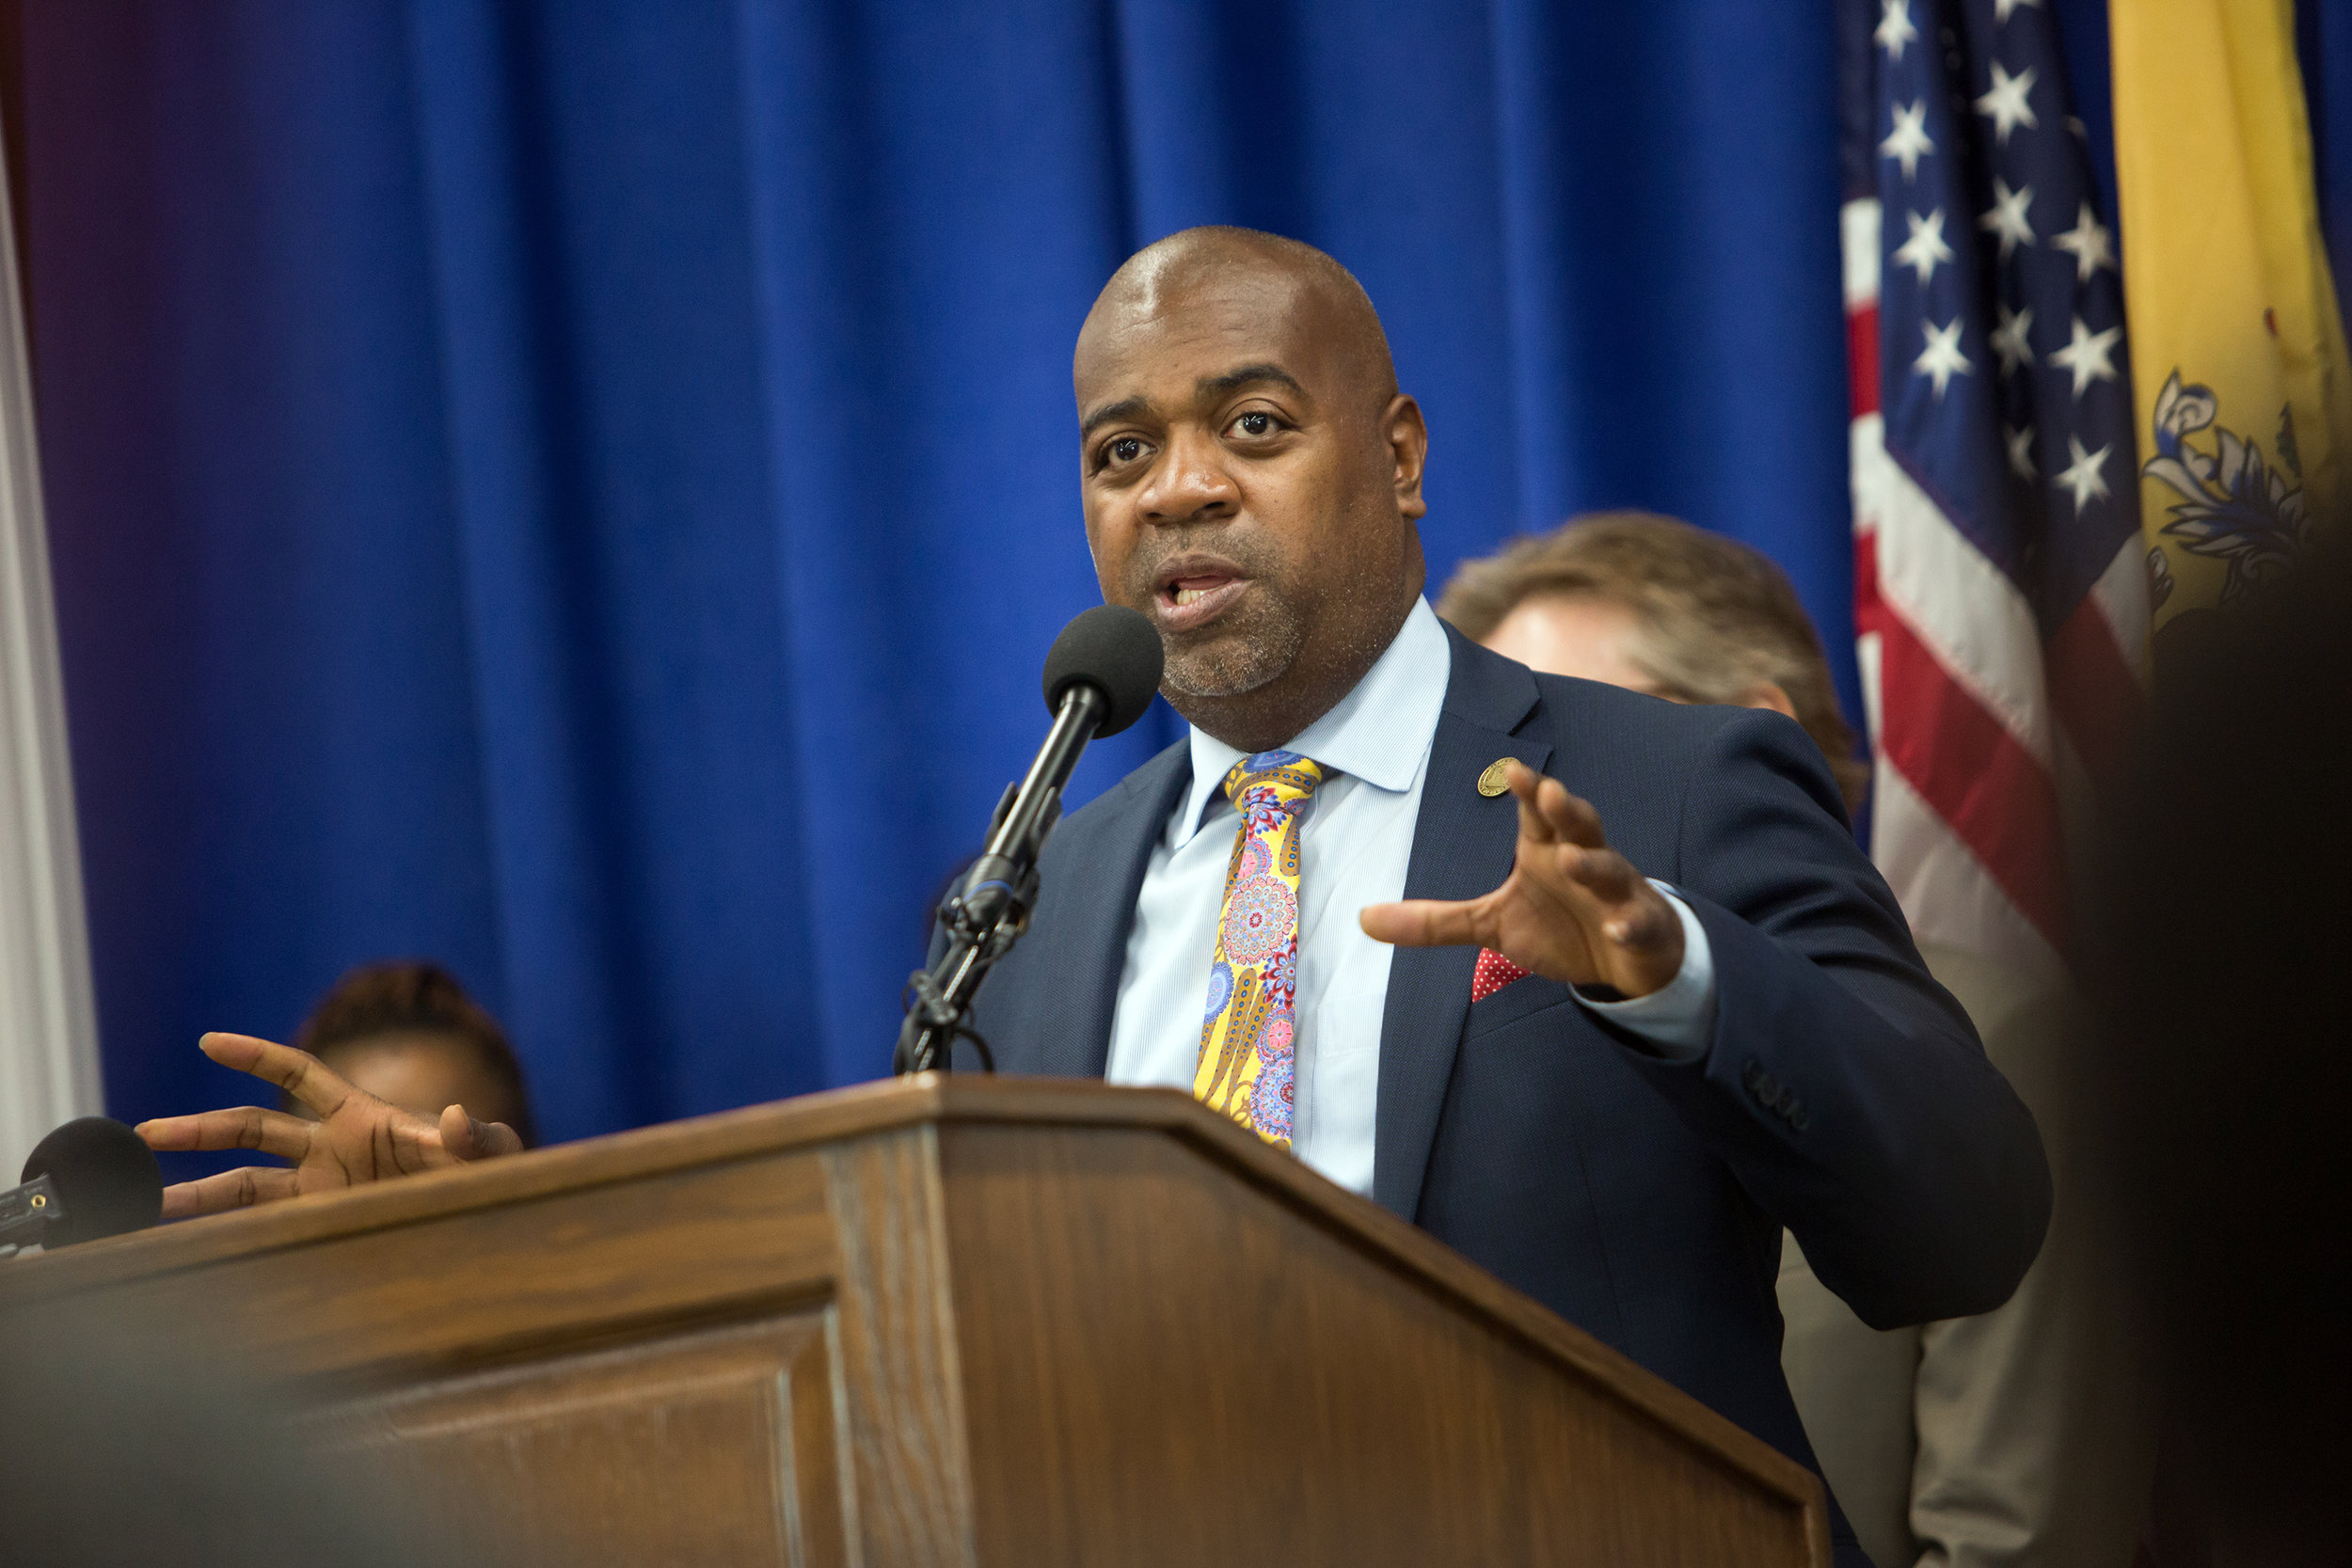 Newark mayor Ras J. Baraka speaking during a press conference where the mayor and school leaders announced steps to return local control of the schools.